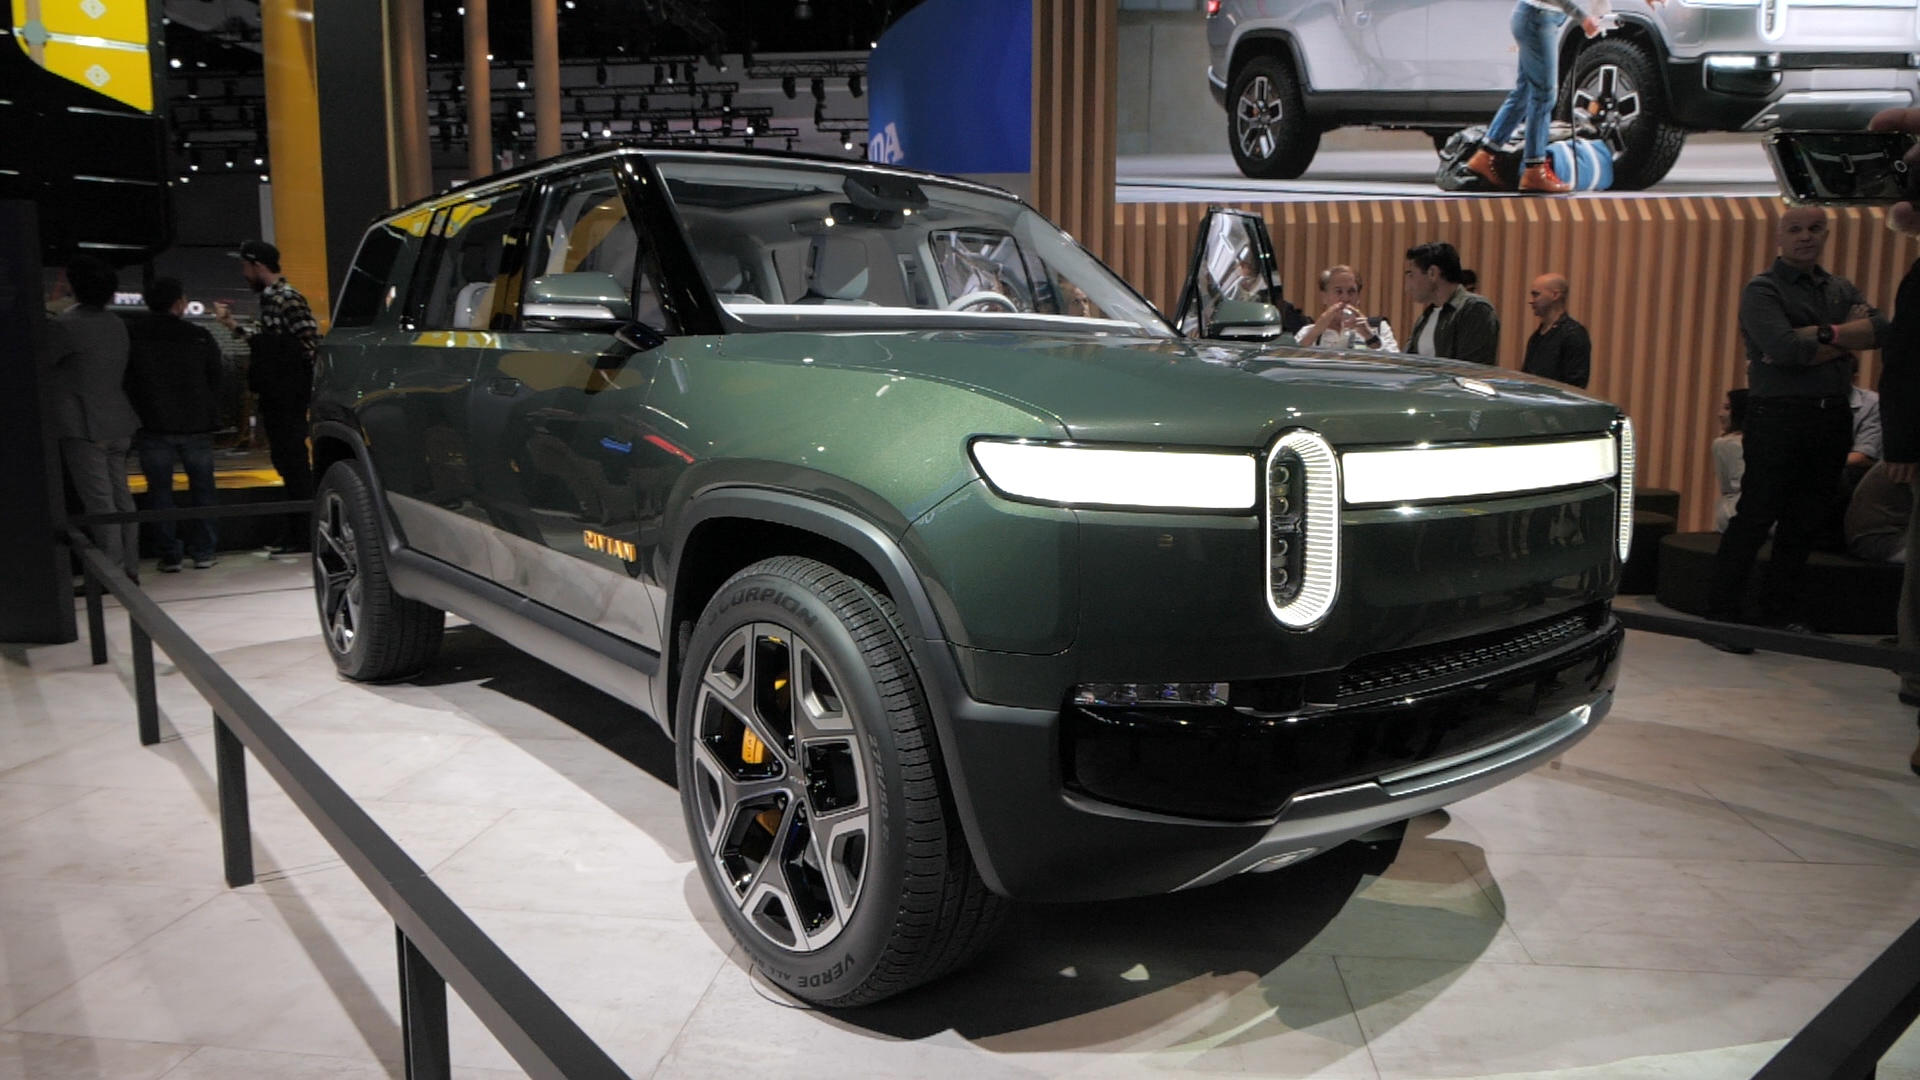 Video: Rivian R1S concept puts electricity into an SUV